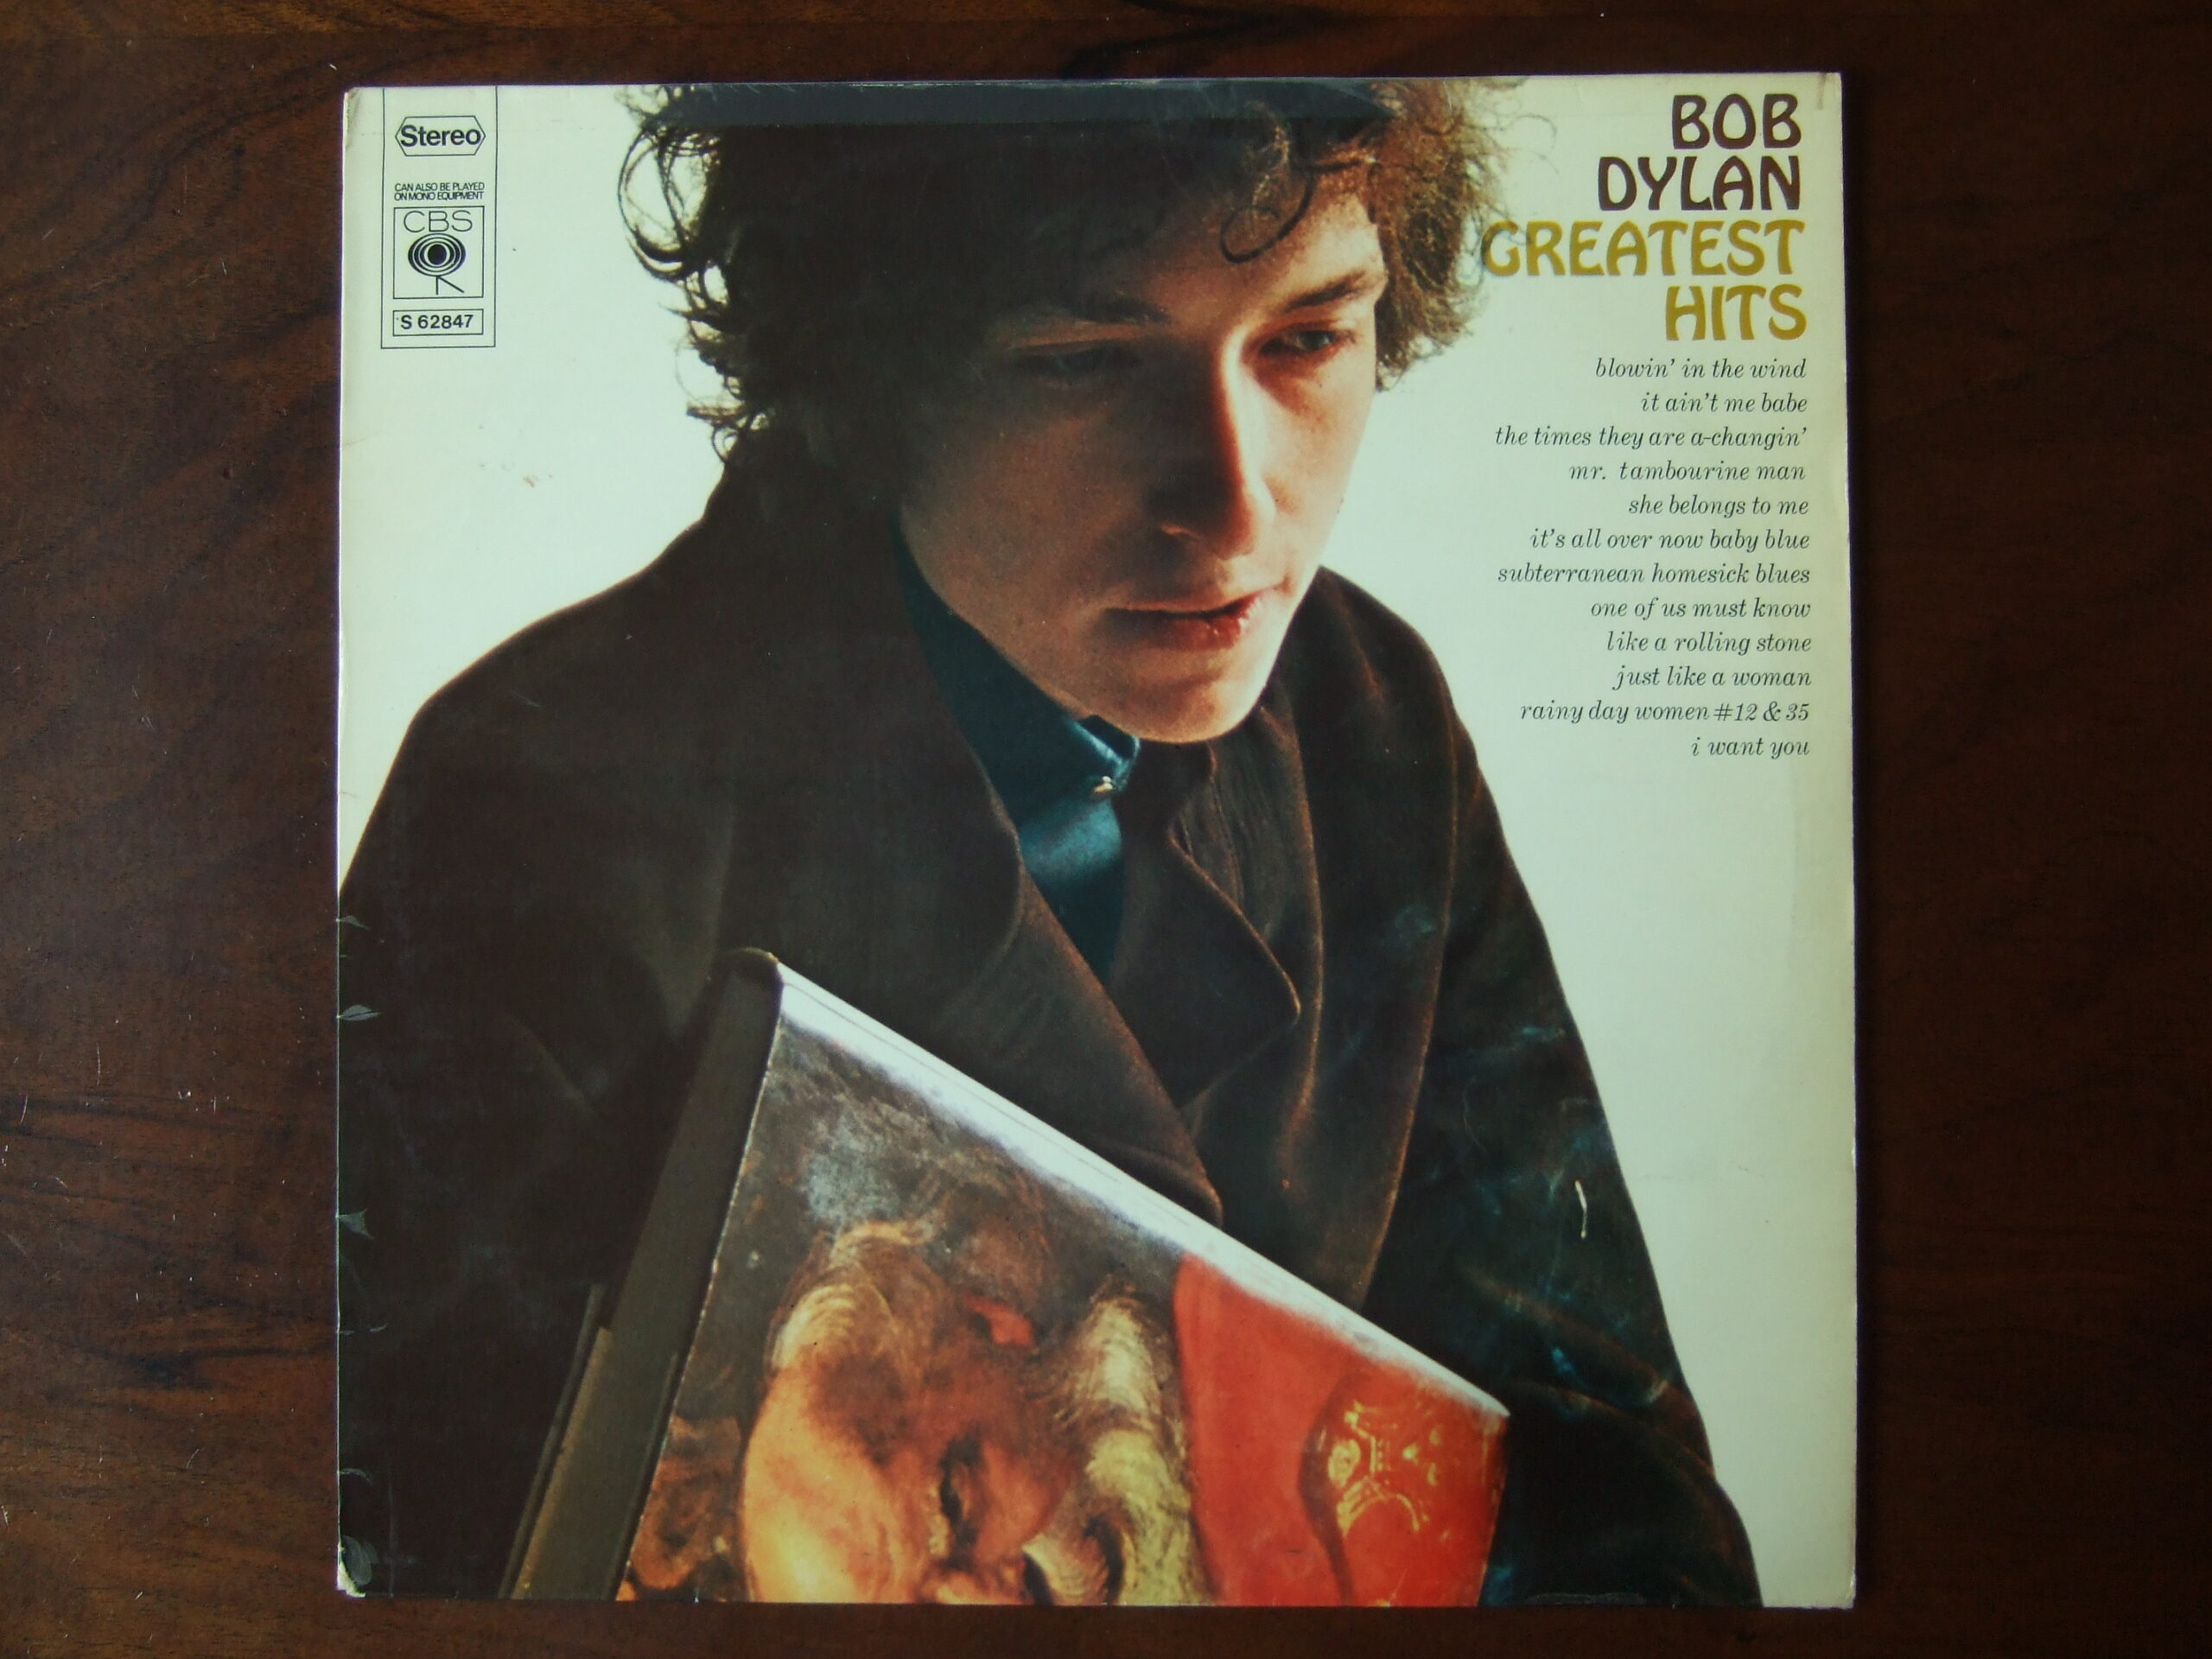 Bob Dylan facts